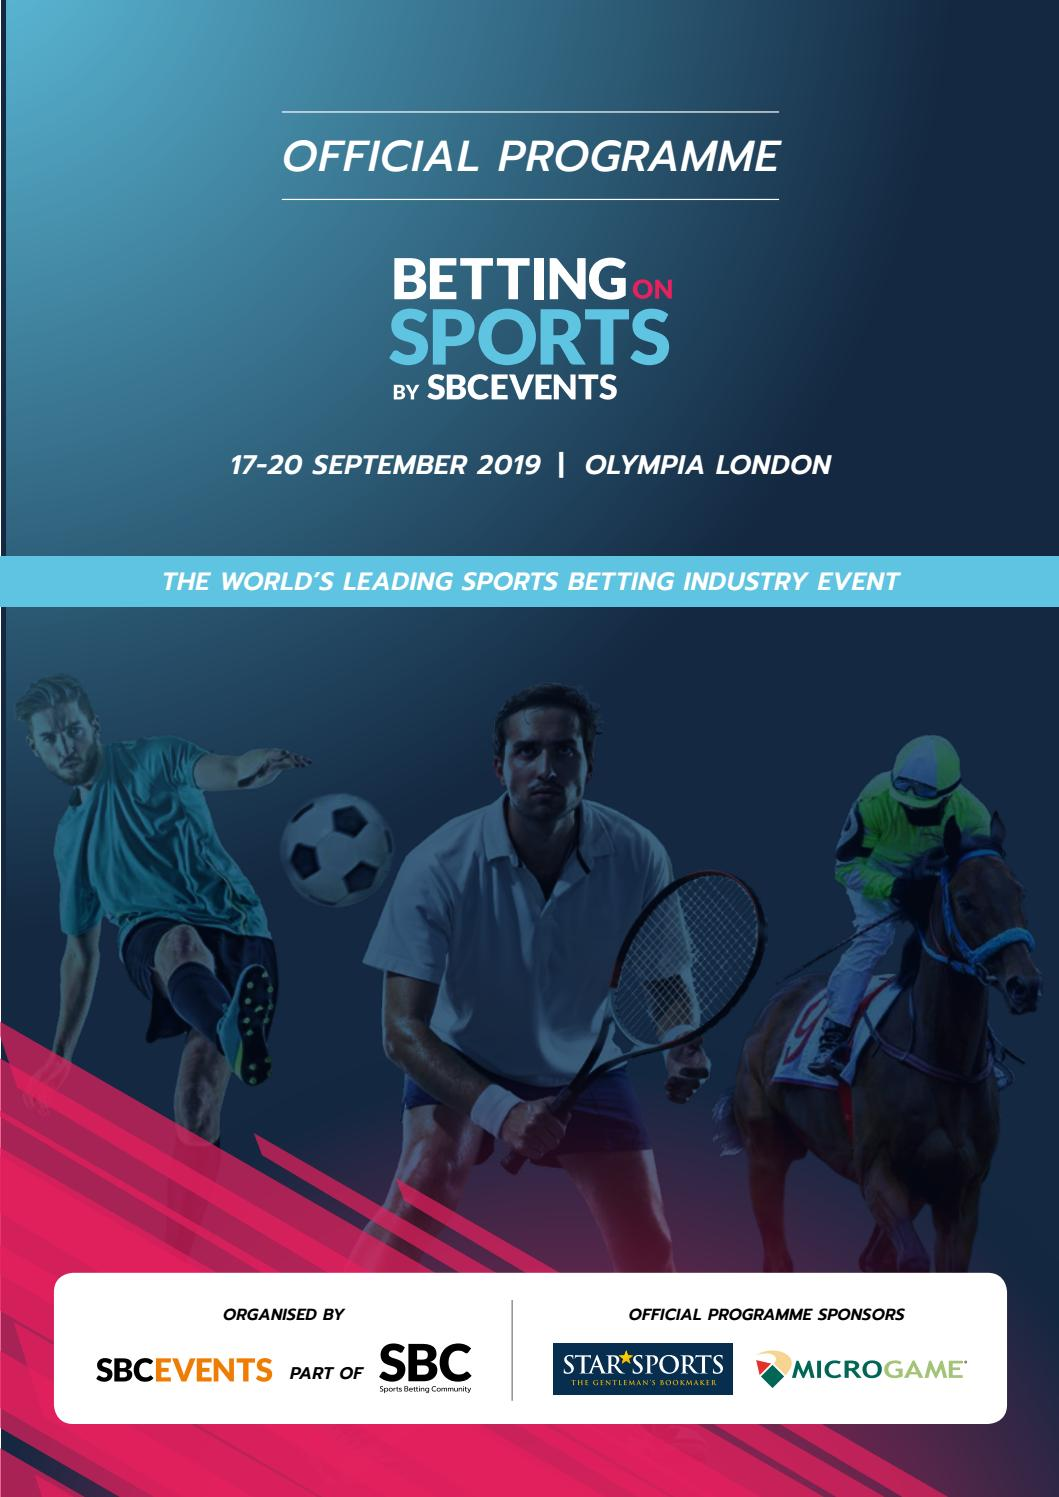 Prophet betting on sports spread betting example sports